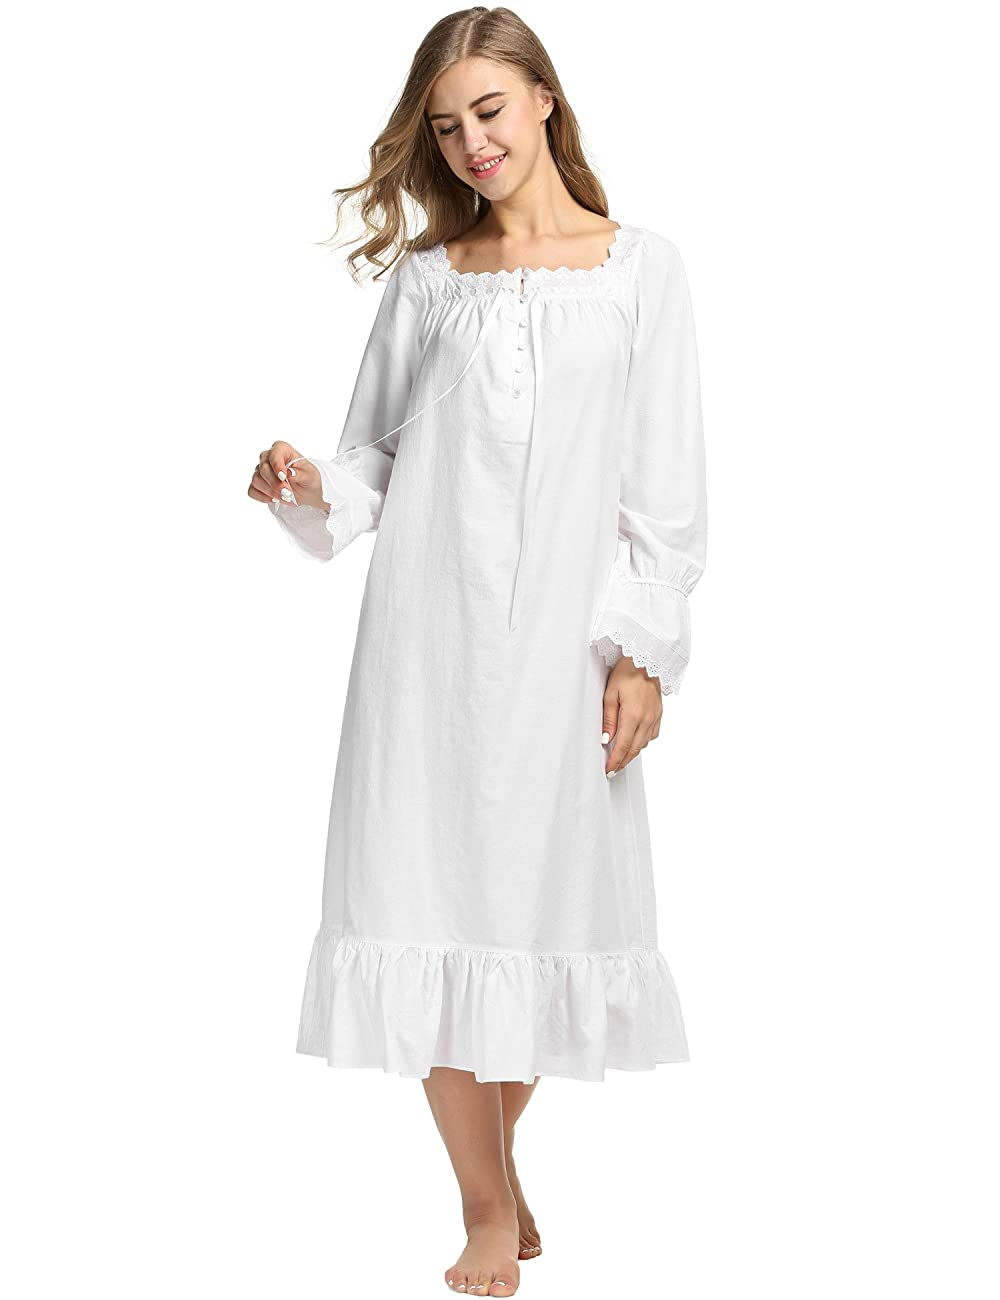 Avidlove Womens Cotton Victorian Nightgowns Romantic Long Bell Sleeve Nightshirt 1